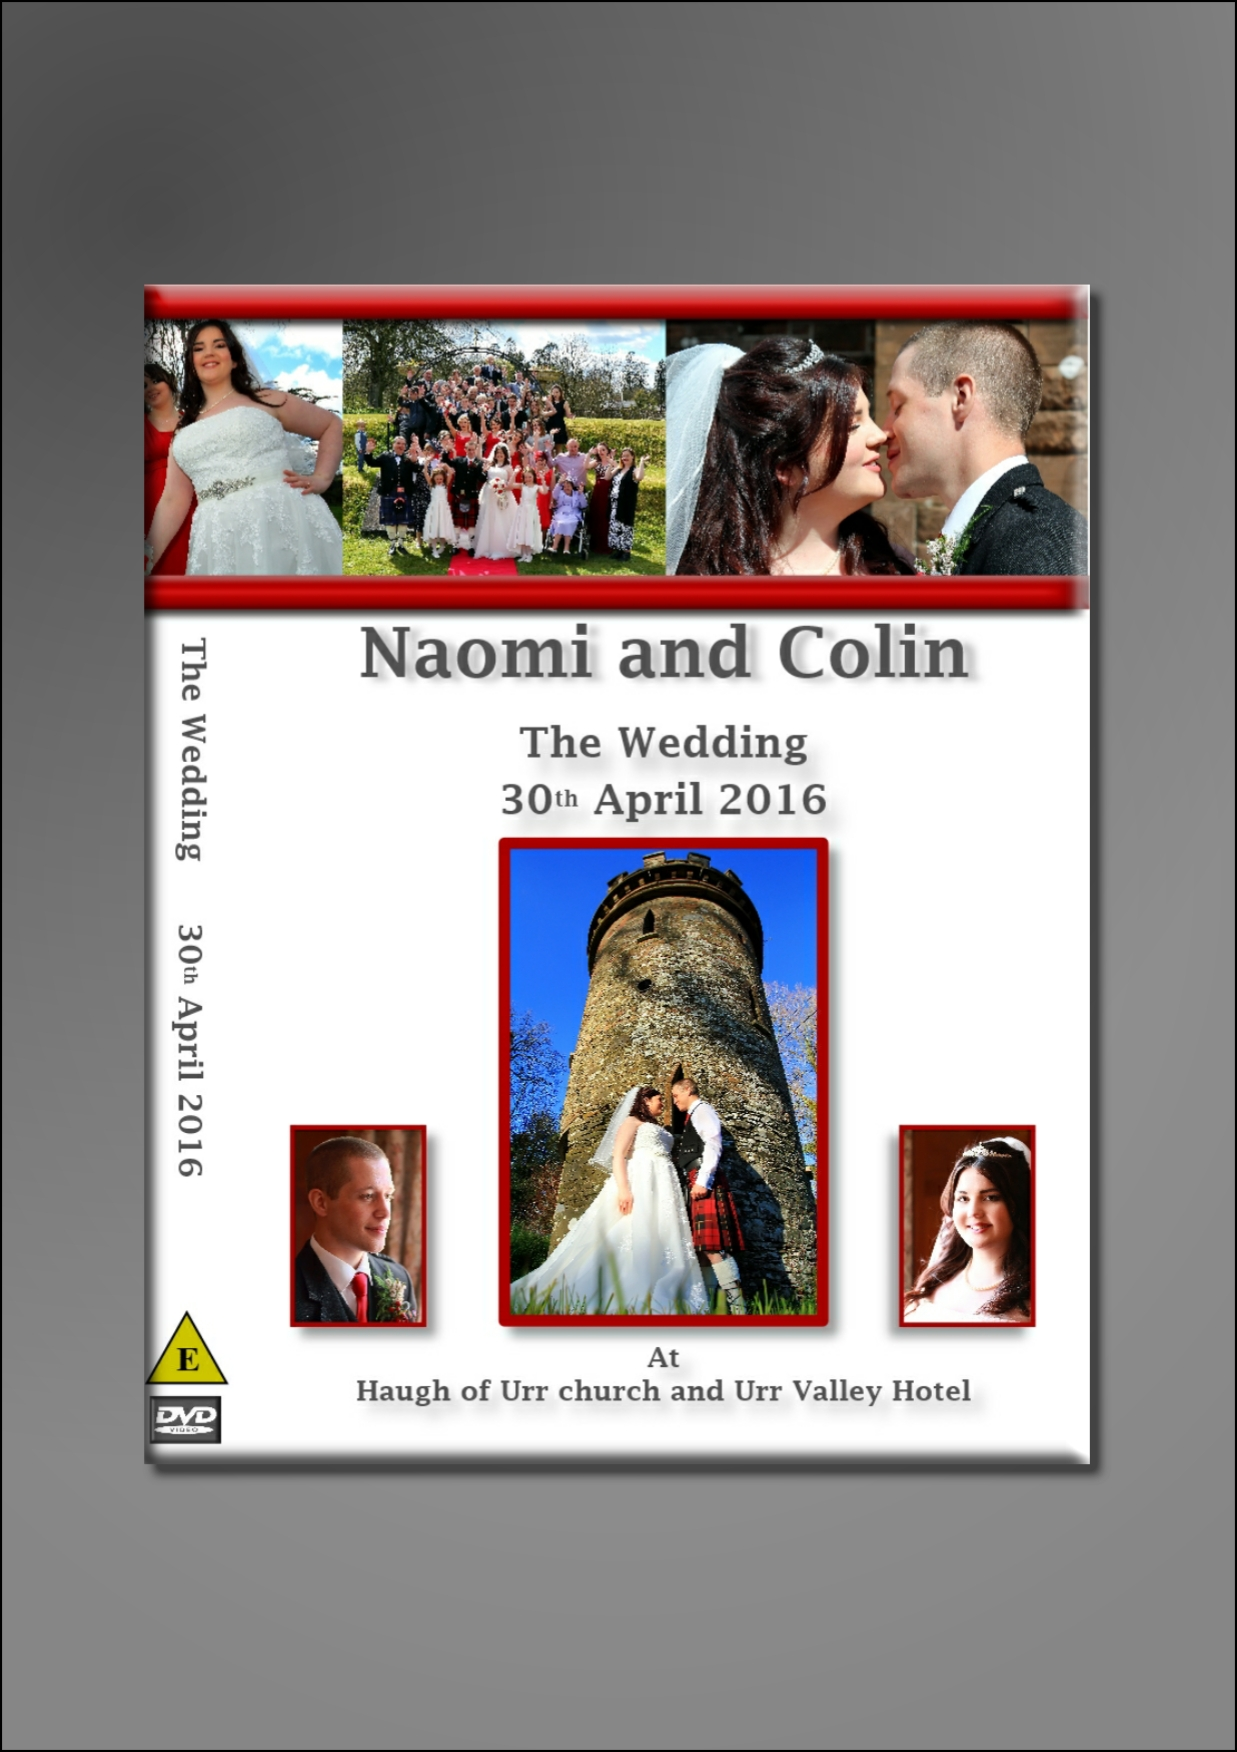 Naomi and Colin's DVD